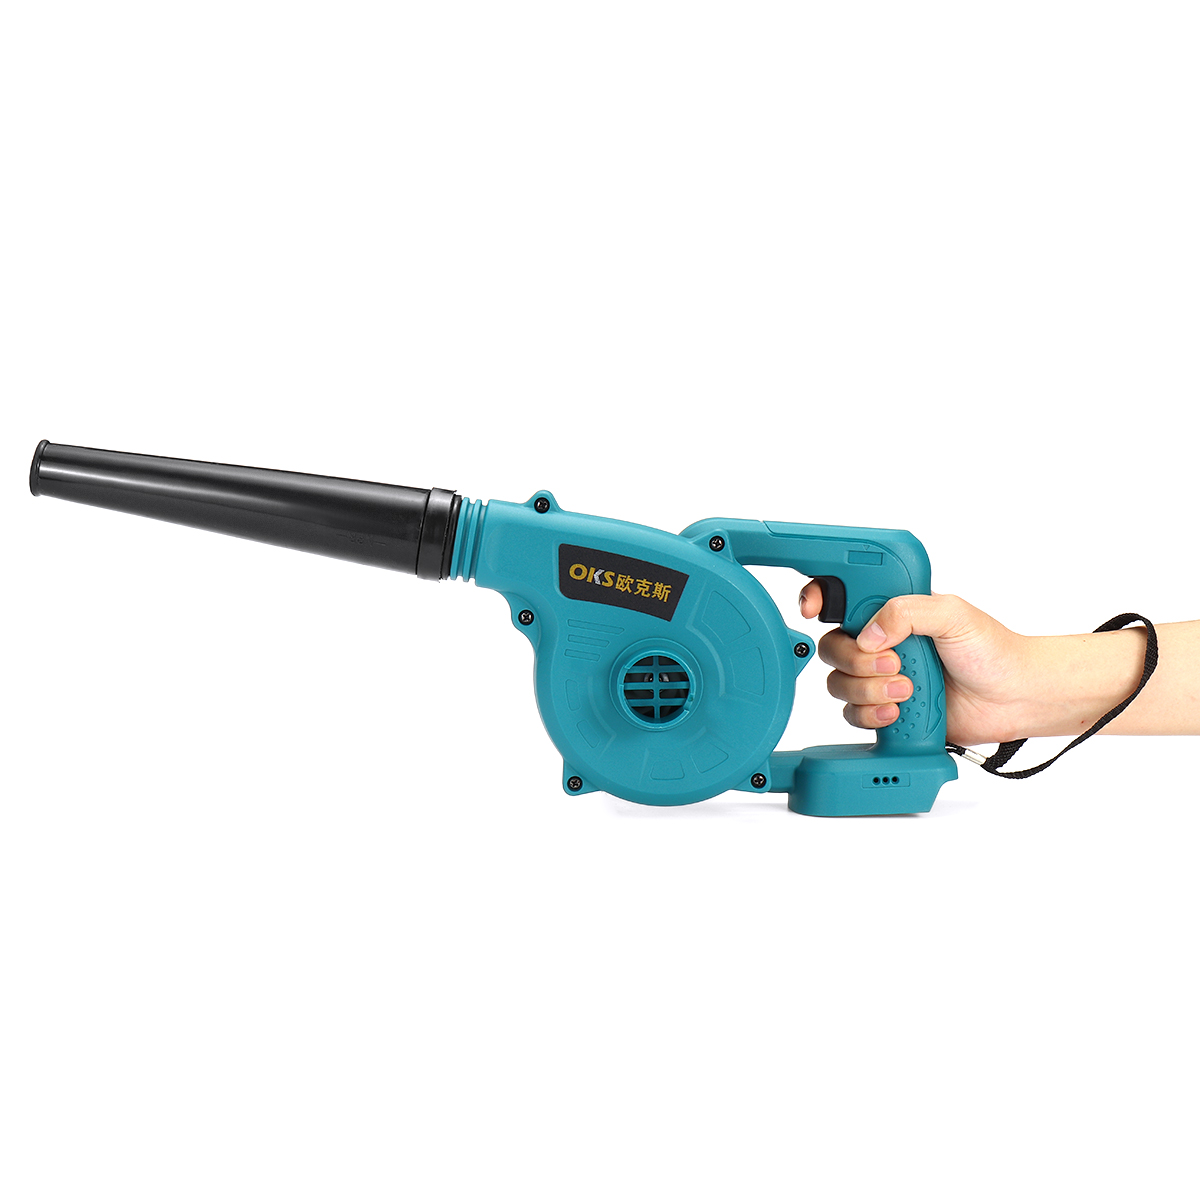 Cordless Electric Air Blower & Suction Handheld Leaf Computer Dust Collector Cleaner Power Tool For Makita 18V Li-ion Battery